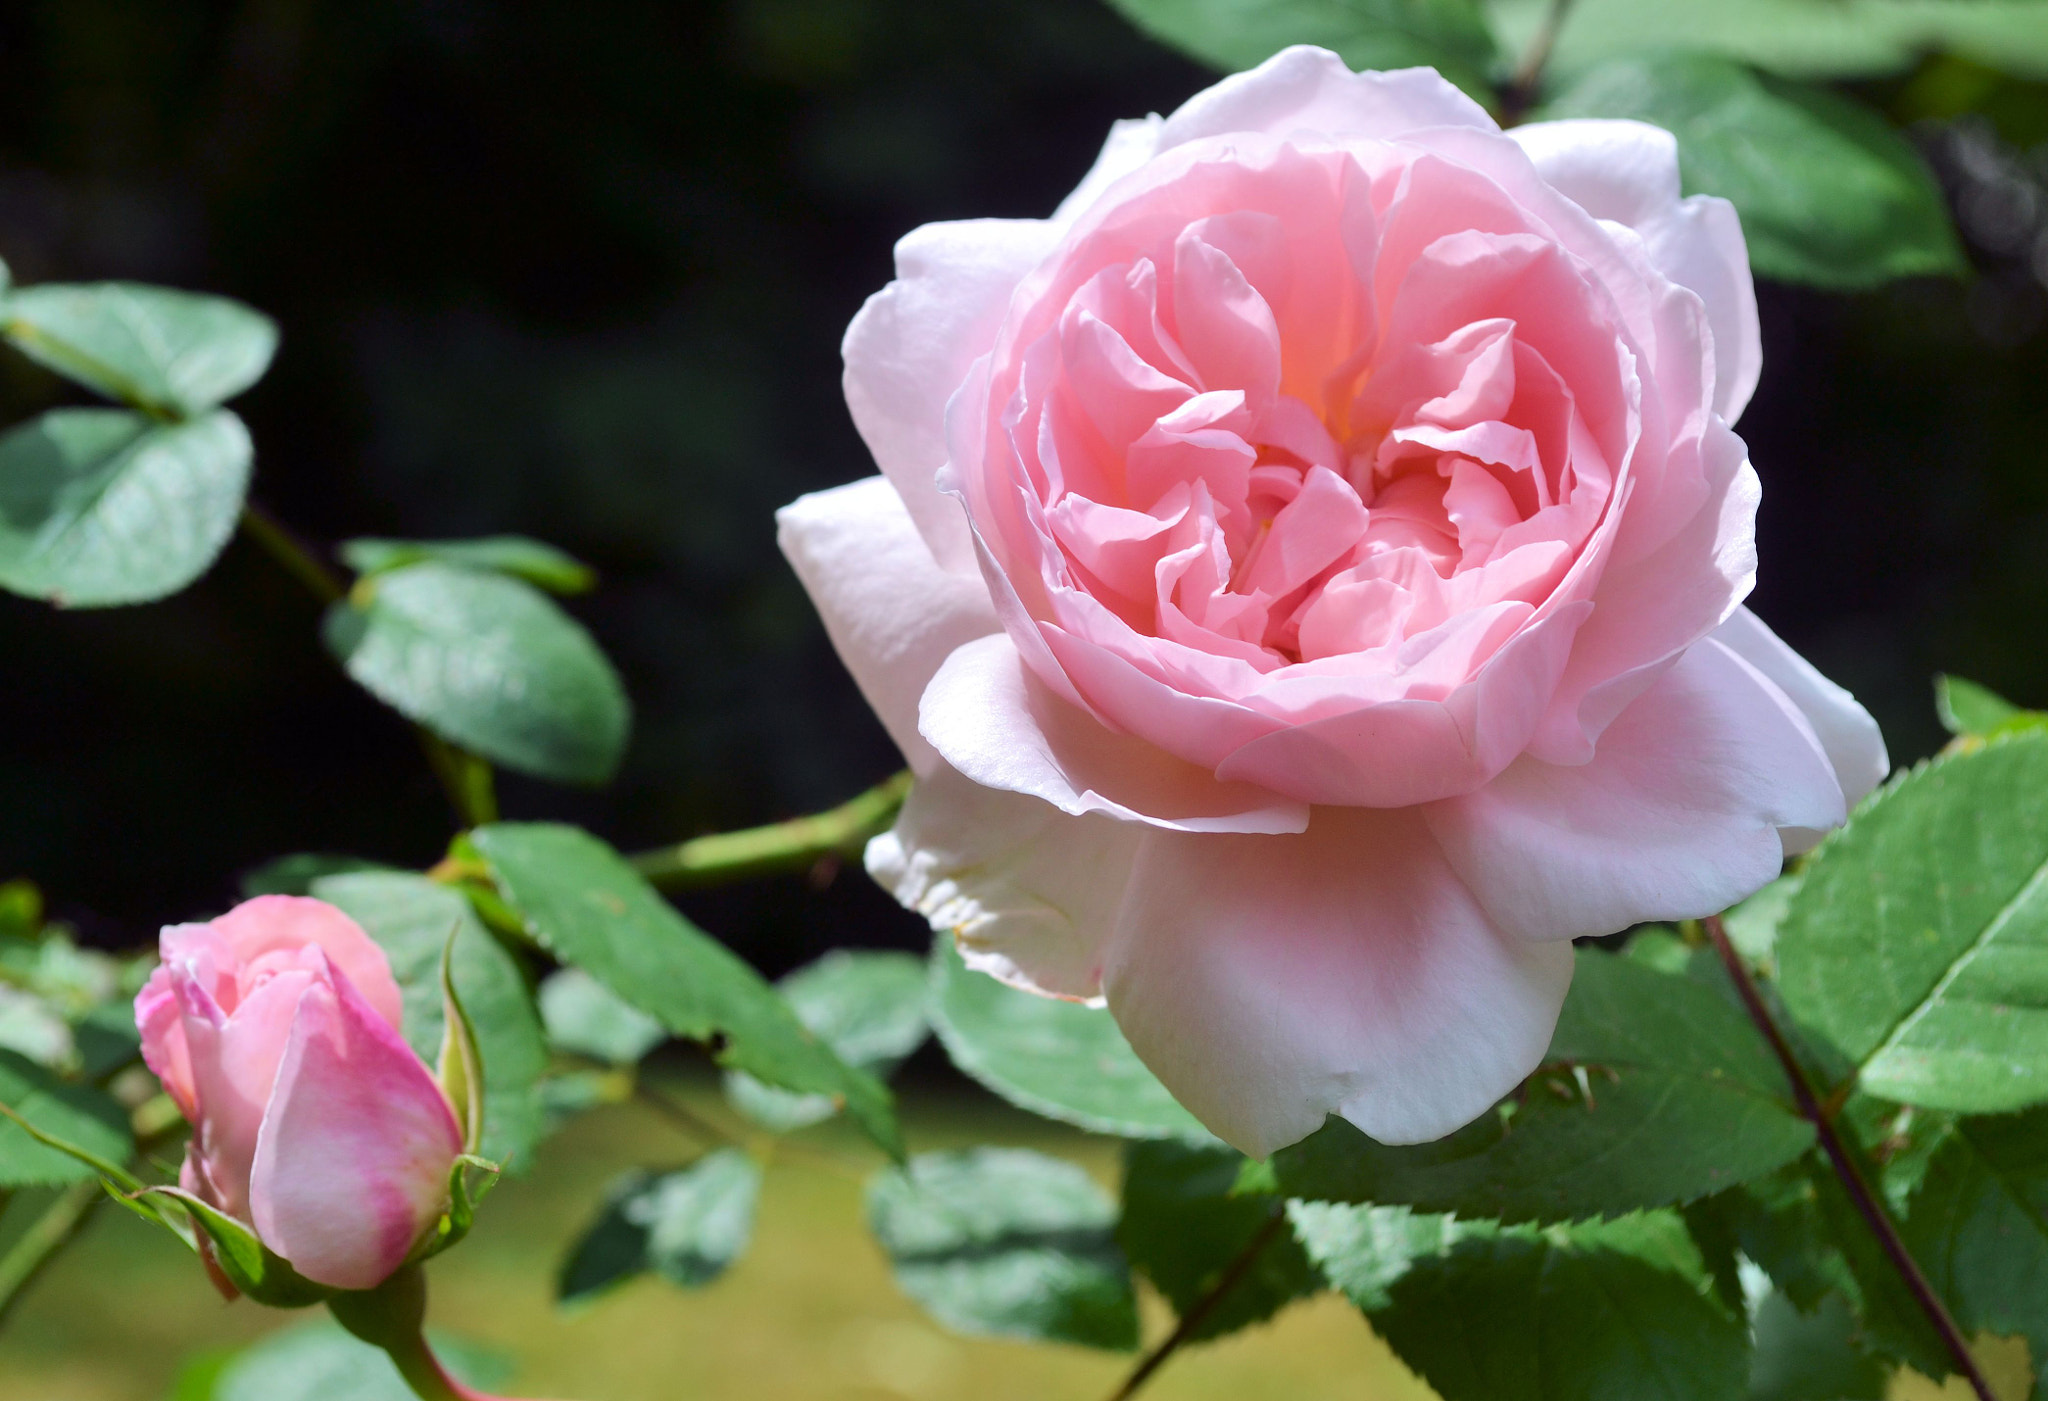 Photograph Pink rose by Heather Aplin on 500px